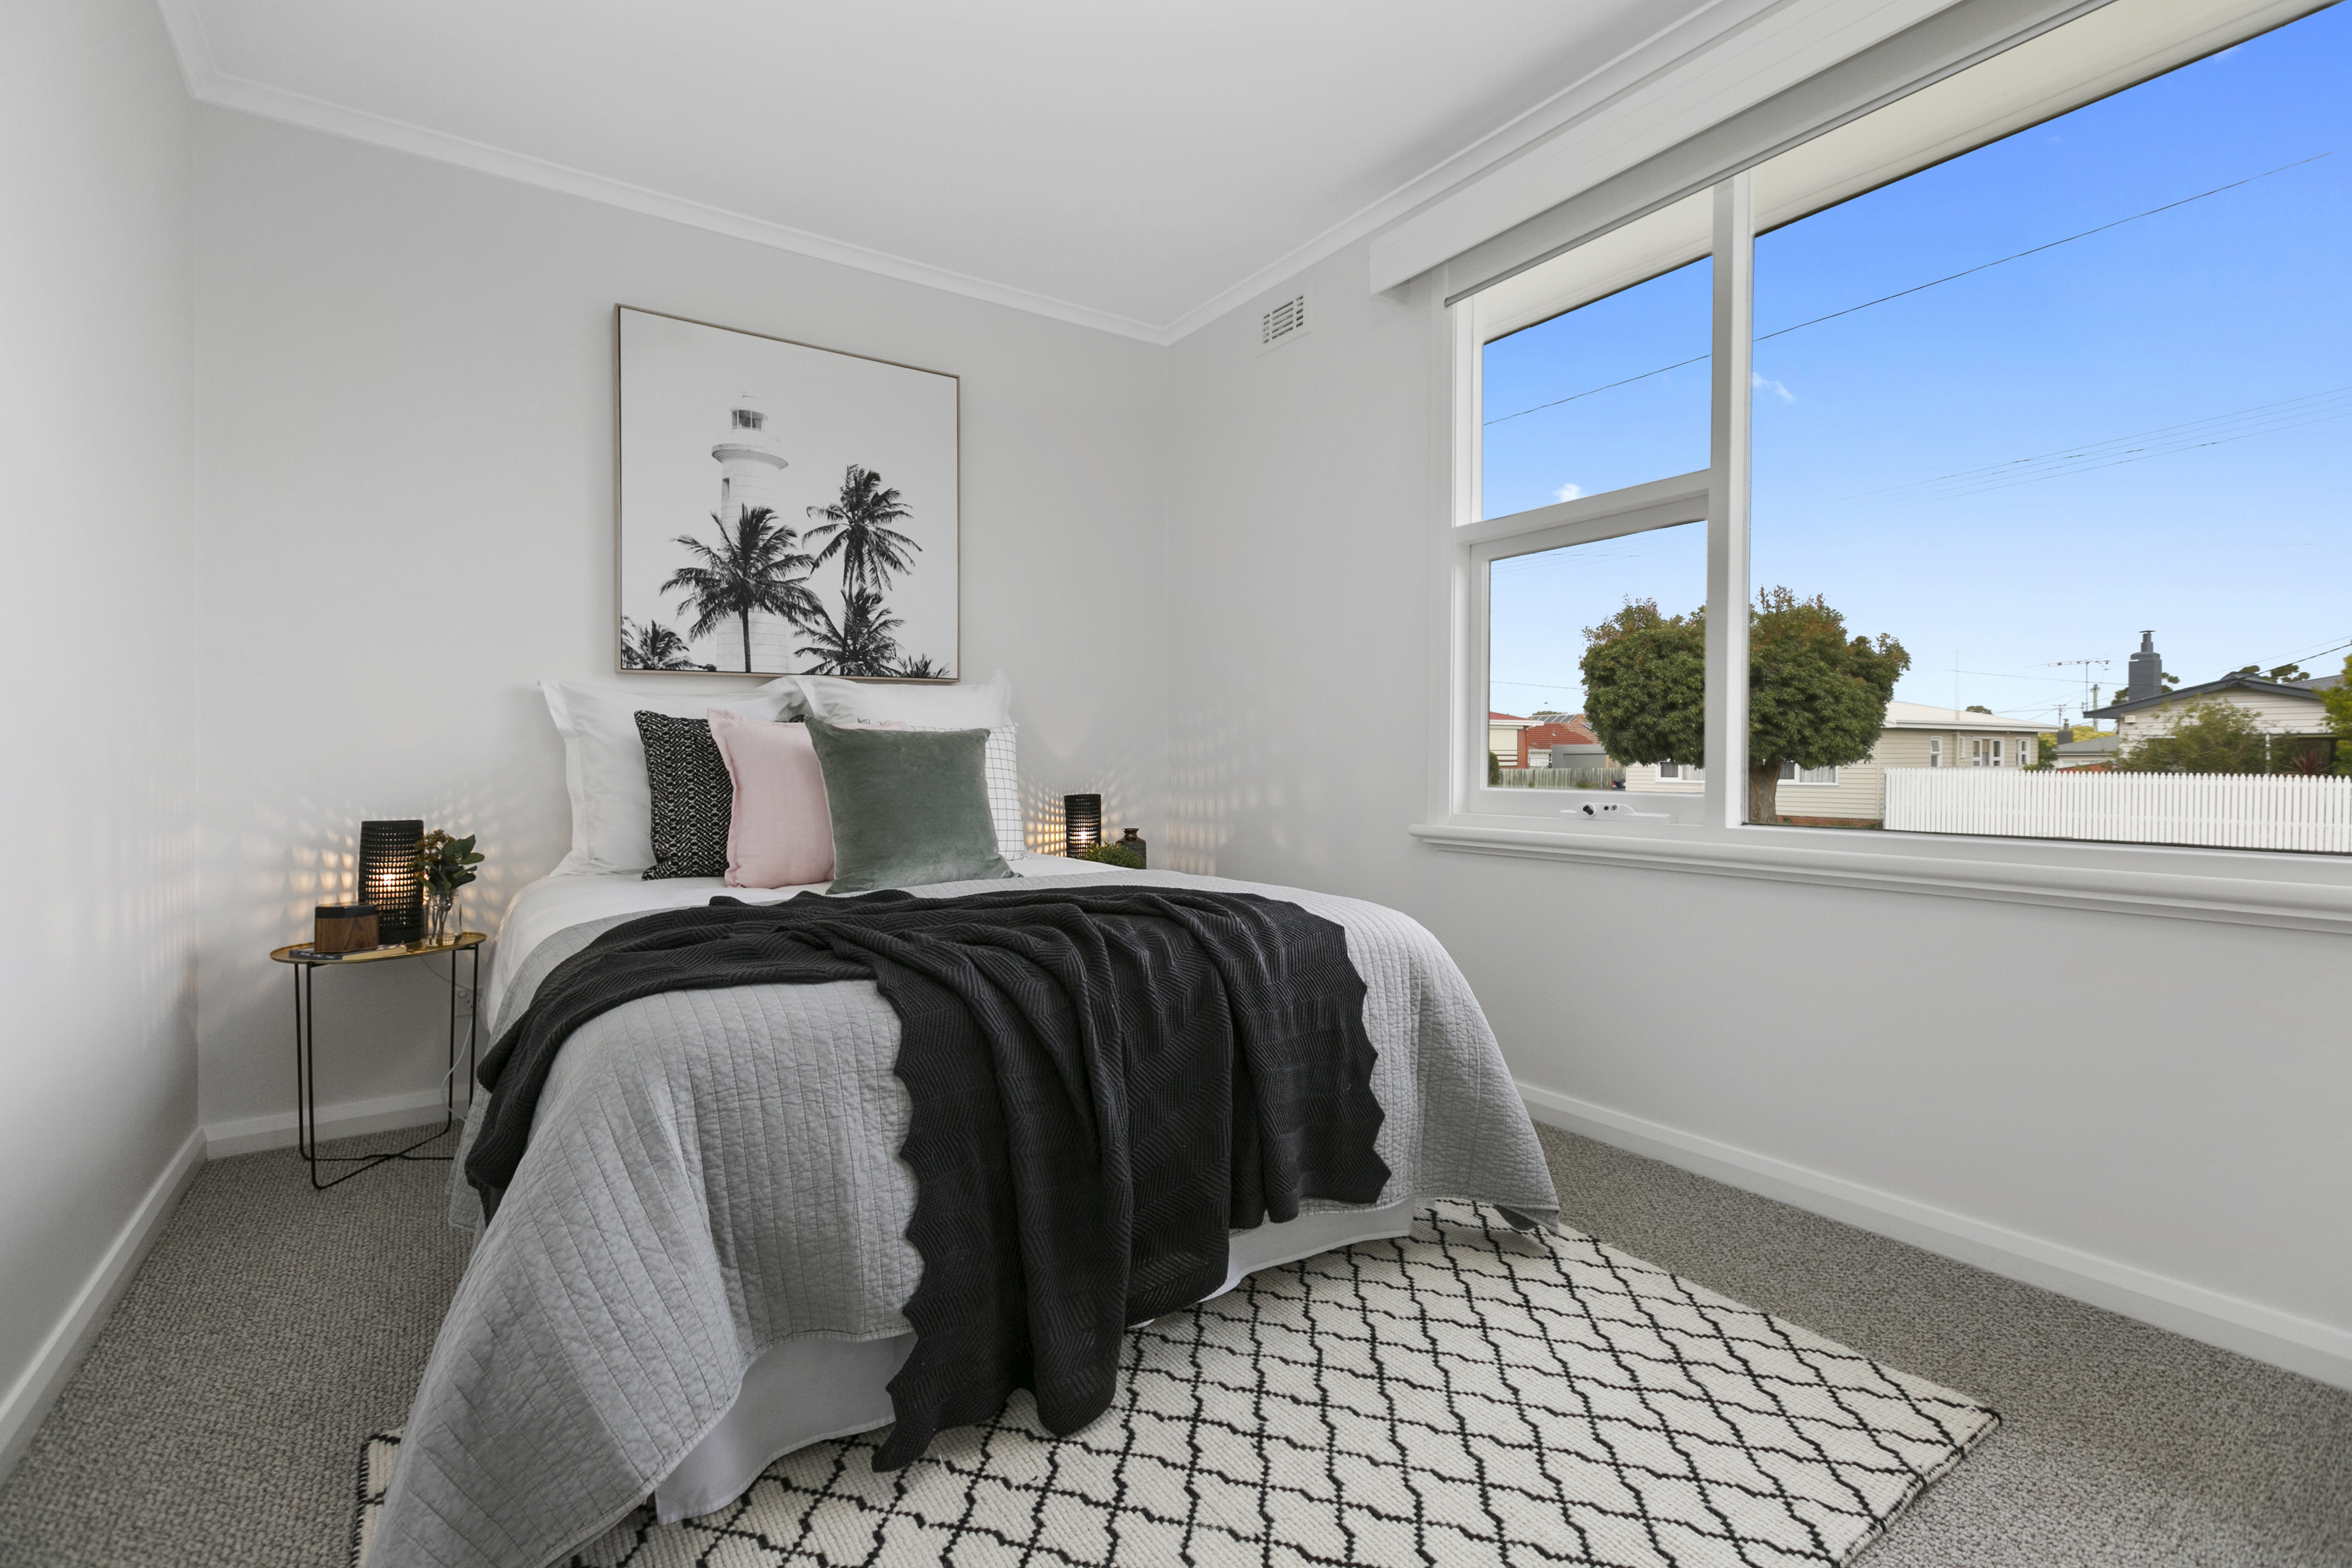 Guest bedroom styling with pops of blush